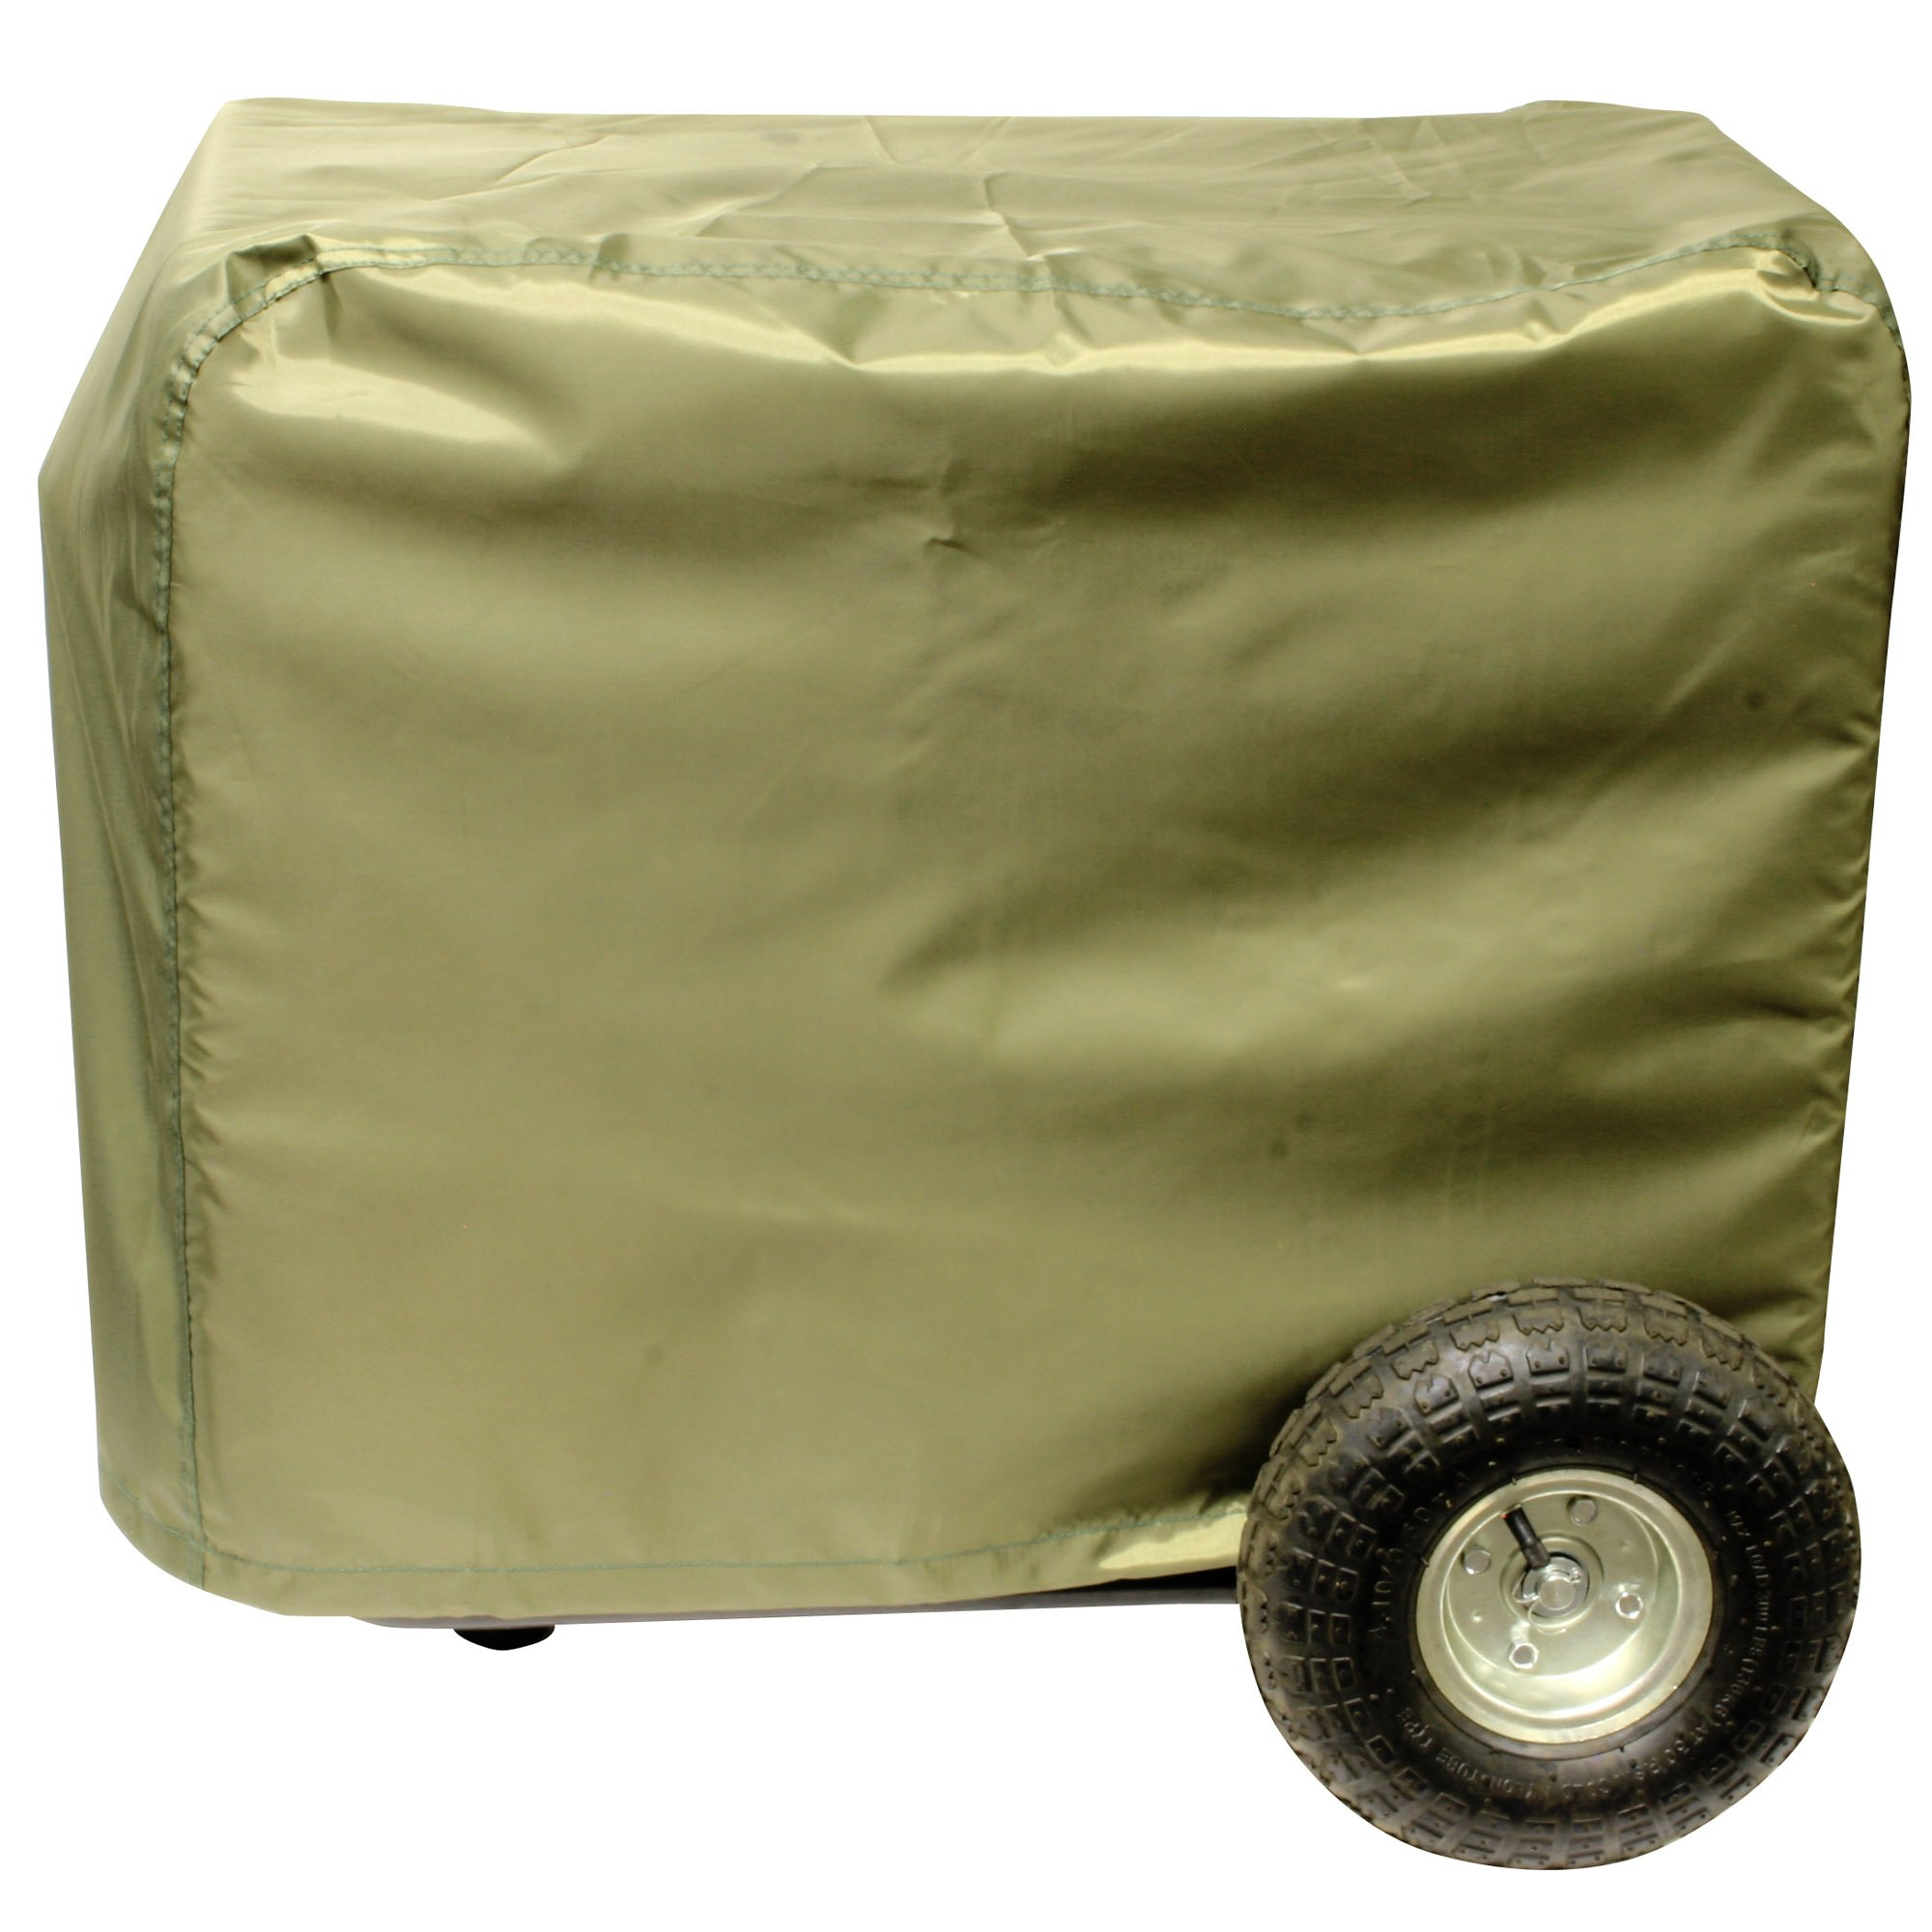 Sportsman GENCOVXL Protective Generator Cover, X-Large by Sportsman